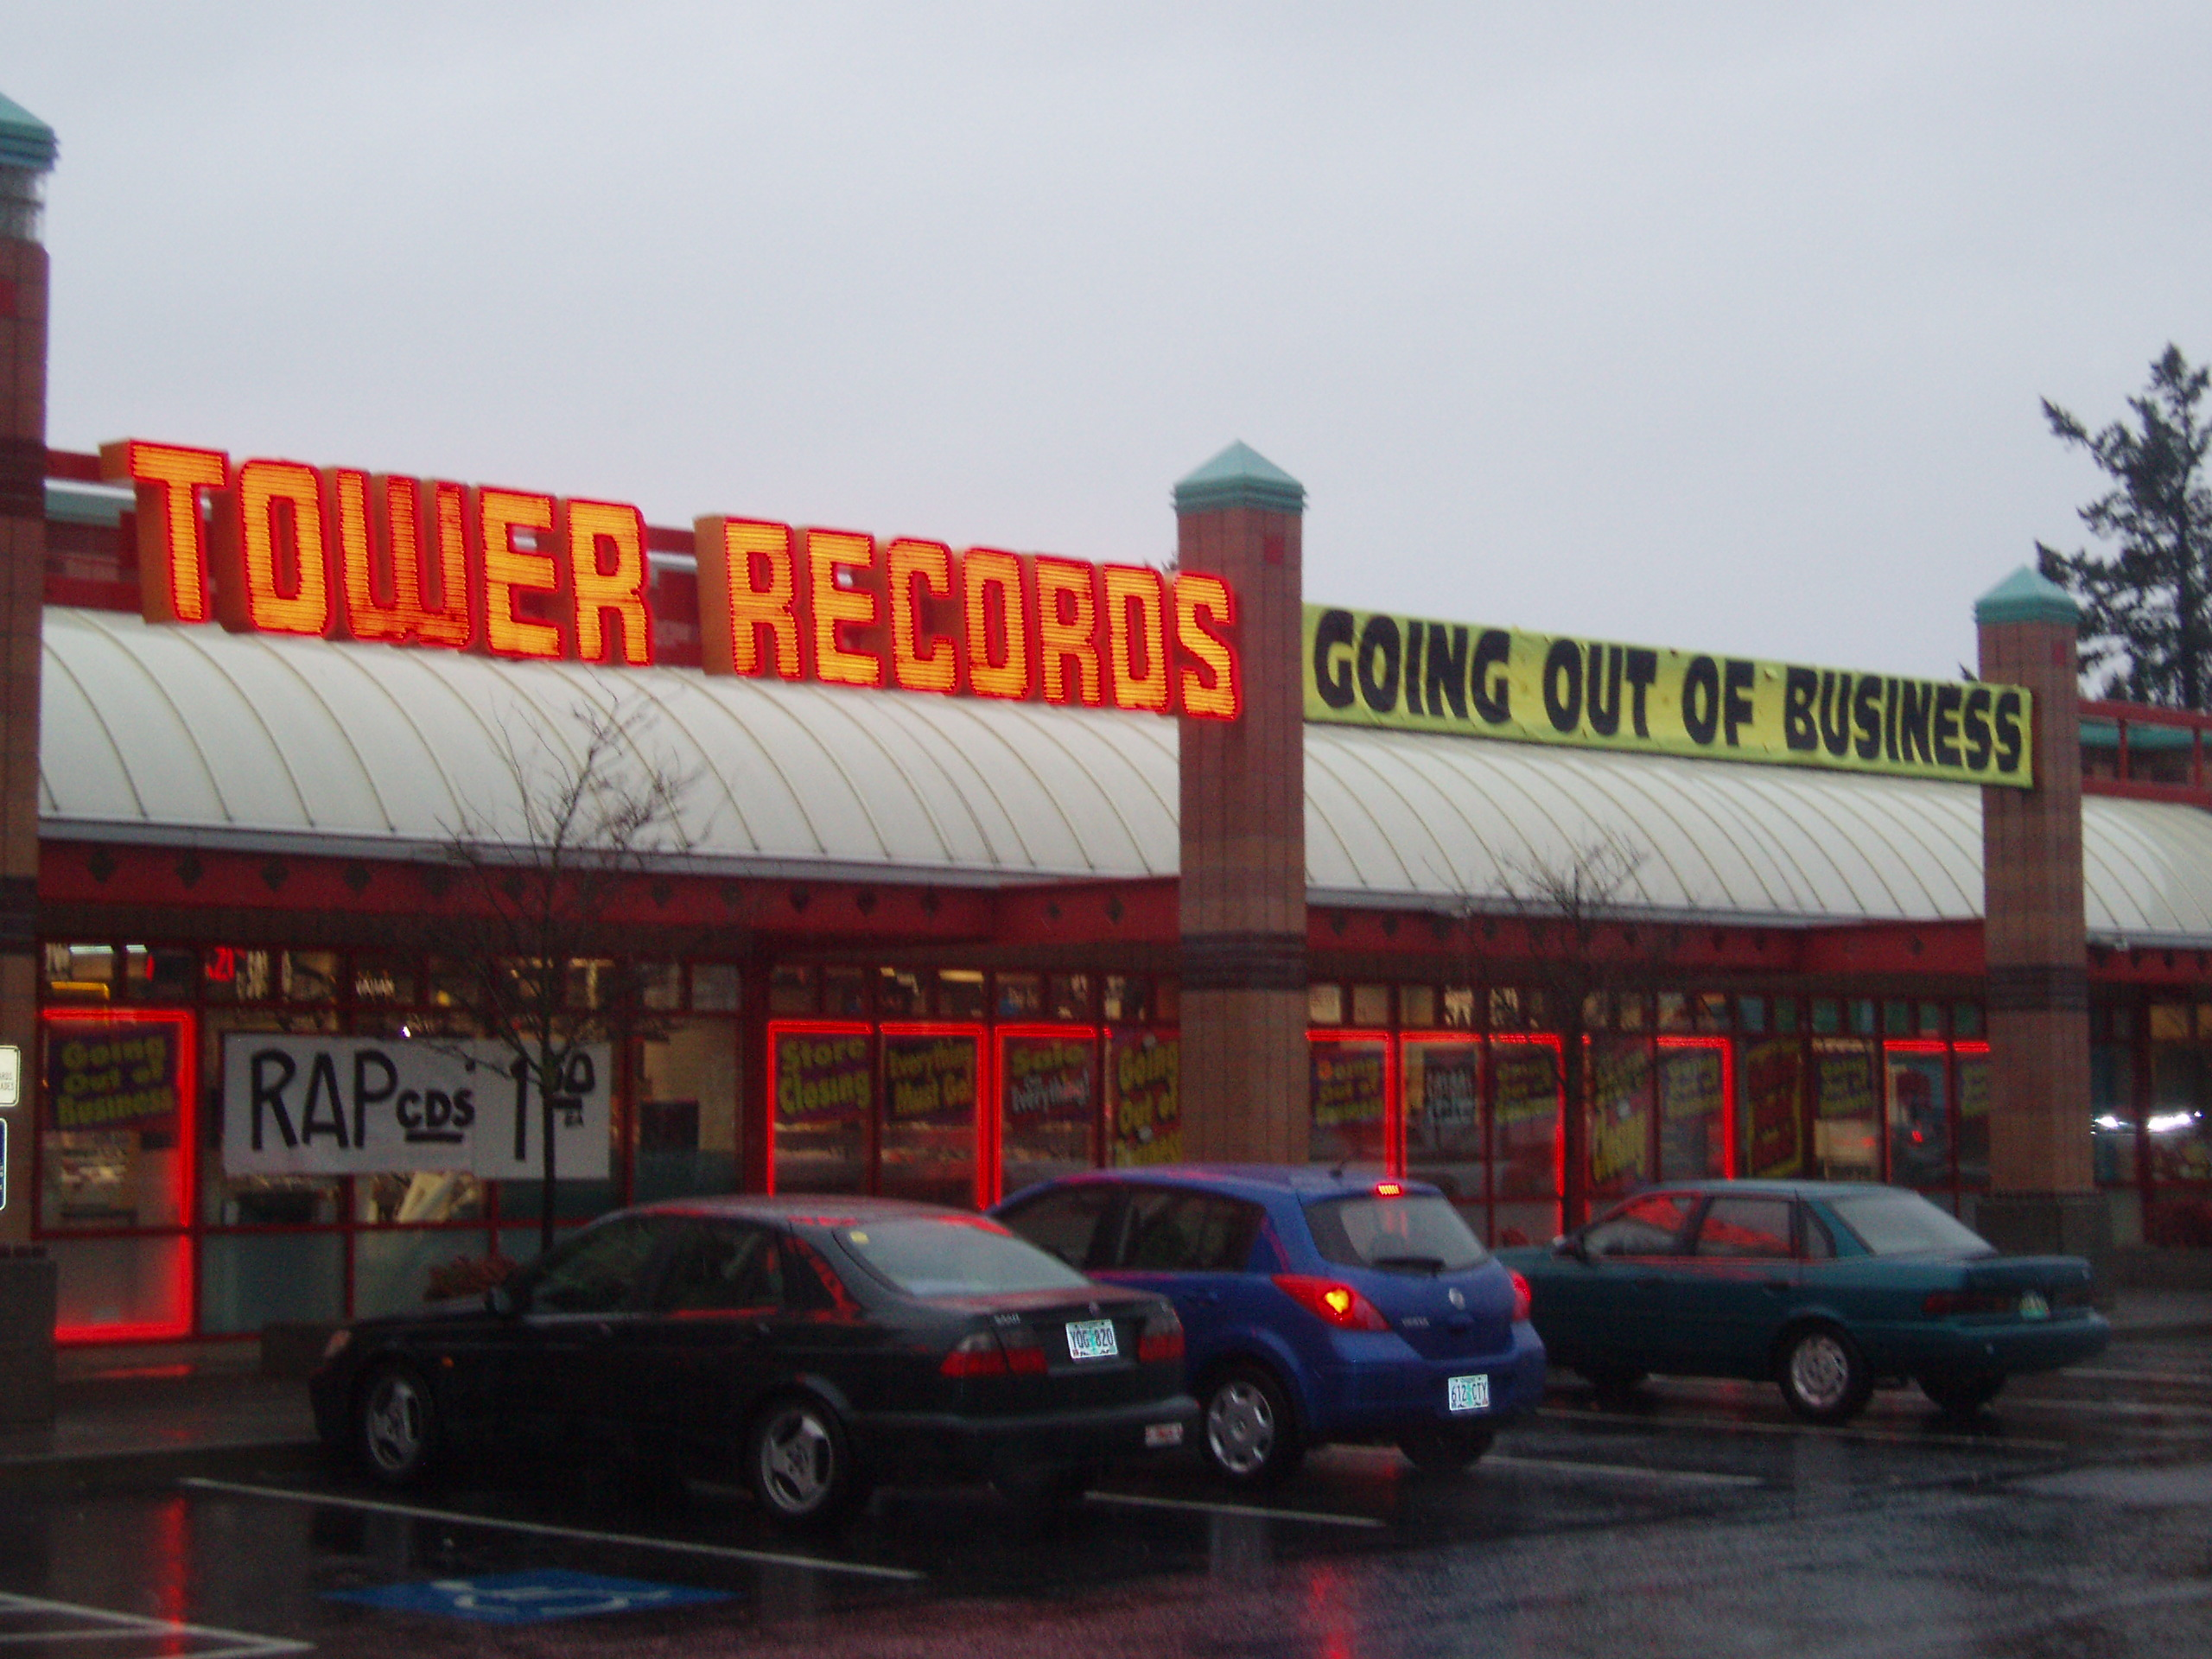 Tower Records Goes Out of Business